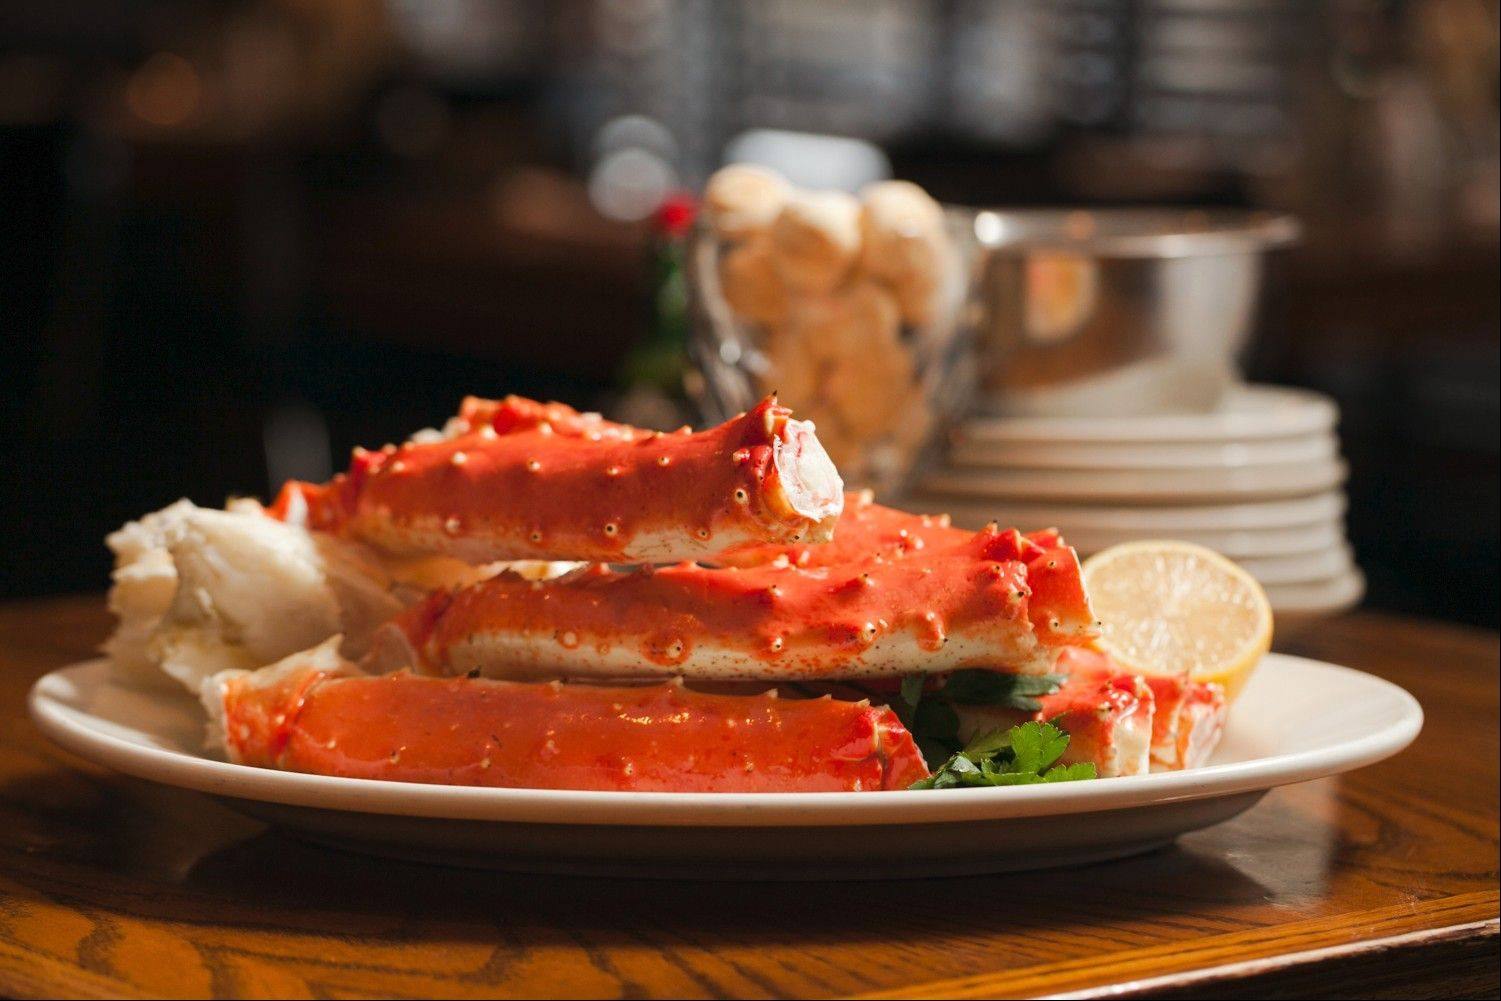 Steamed Alaskan red king crab legs are part of the three-course dinner menu offered by Shaw's Crab House for Chicago Restaurant Week 2014.